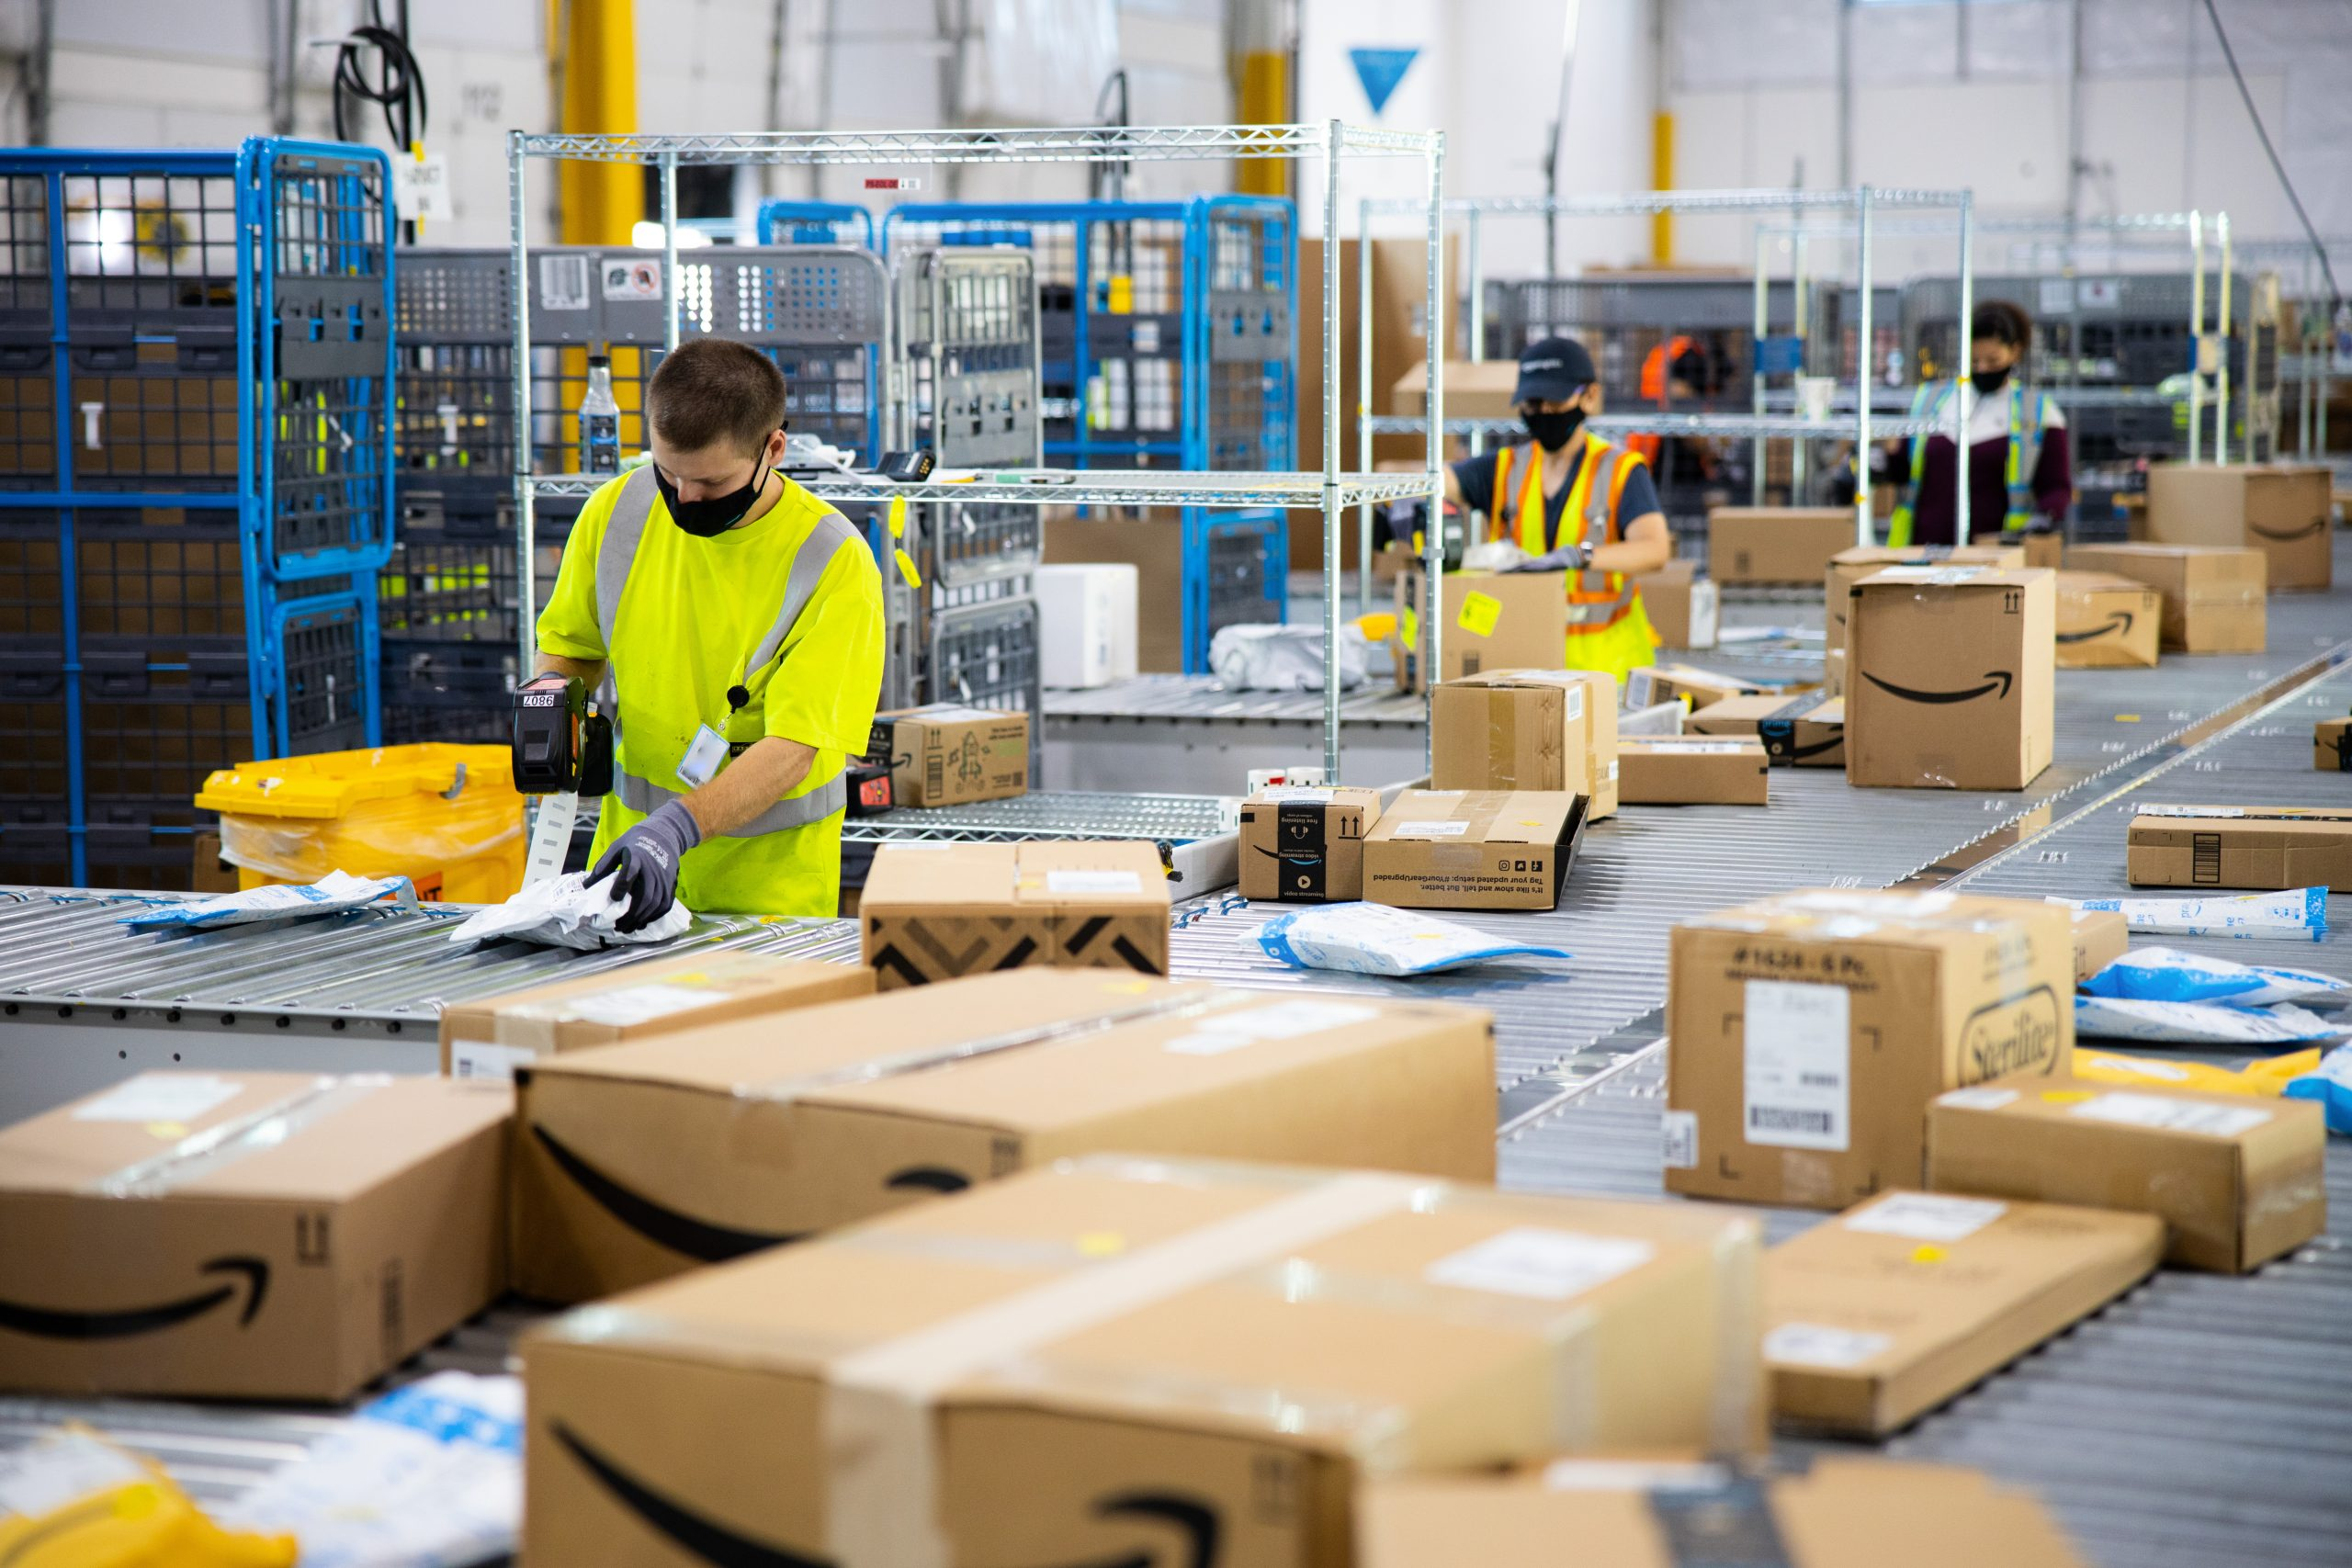 """Amazon """"Under Siege"""" as New Boss Takes Over for Jeff Bezos"""